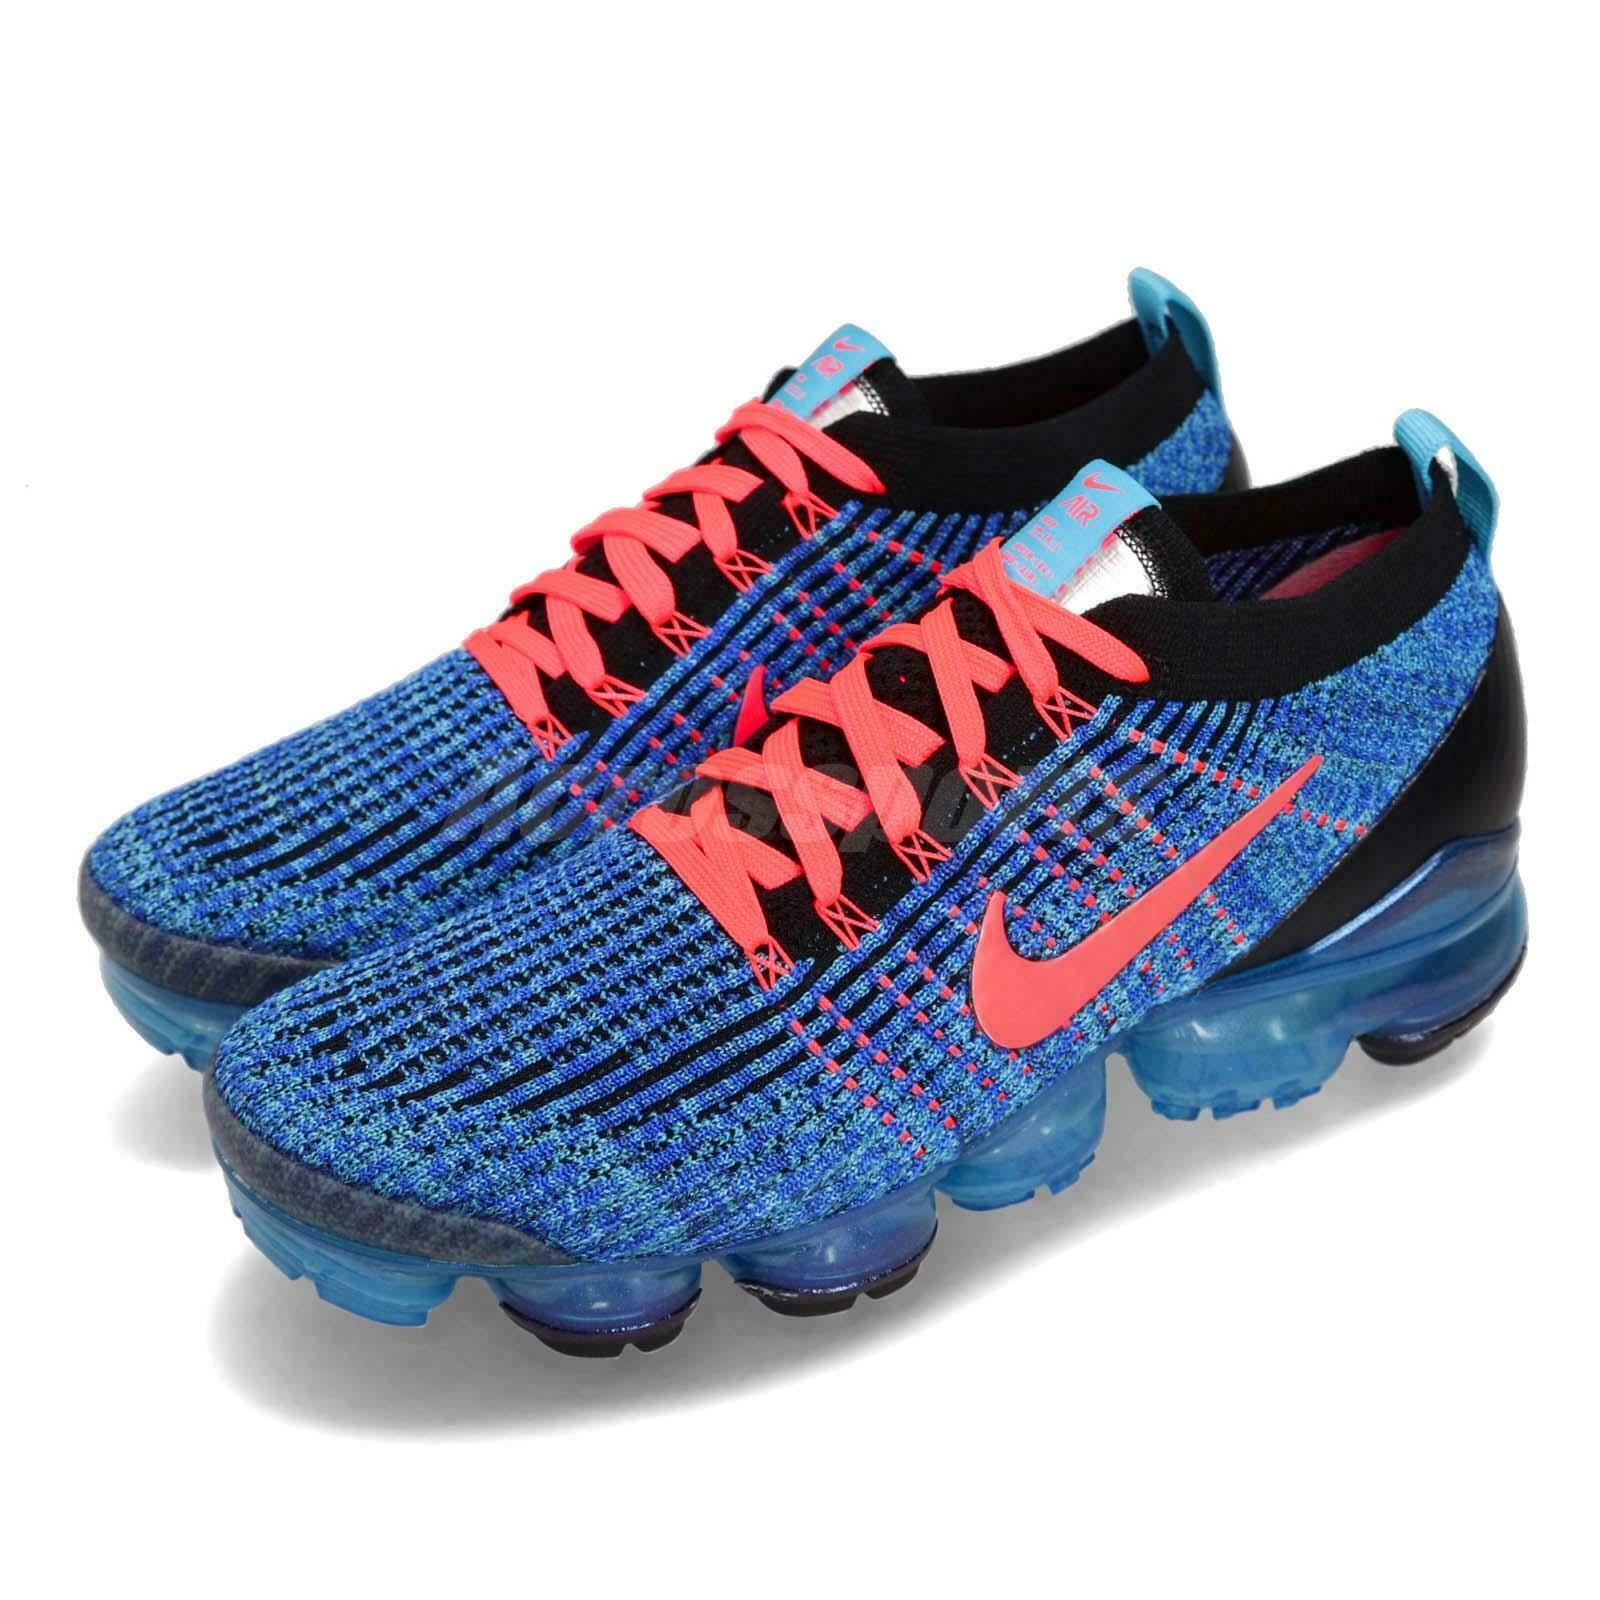 Nike  Air Vapormax Flyknit 3 bluee Fury Flash Crimson Men Running shoes AJ6900-401  looking for sales agent